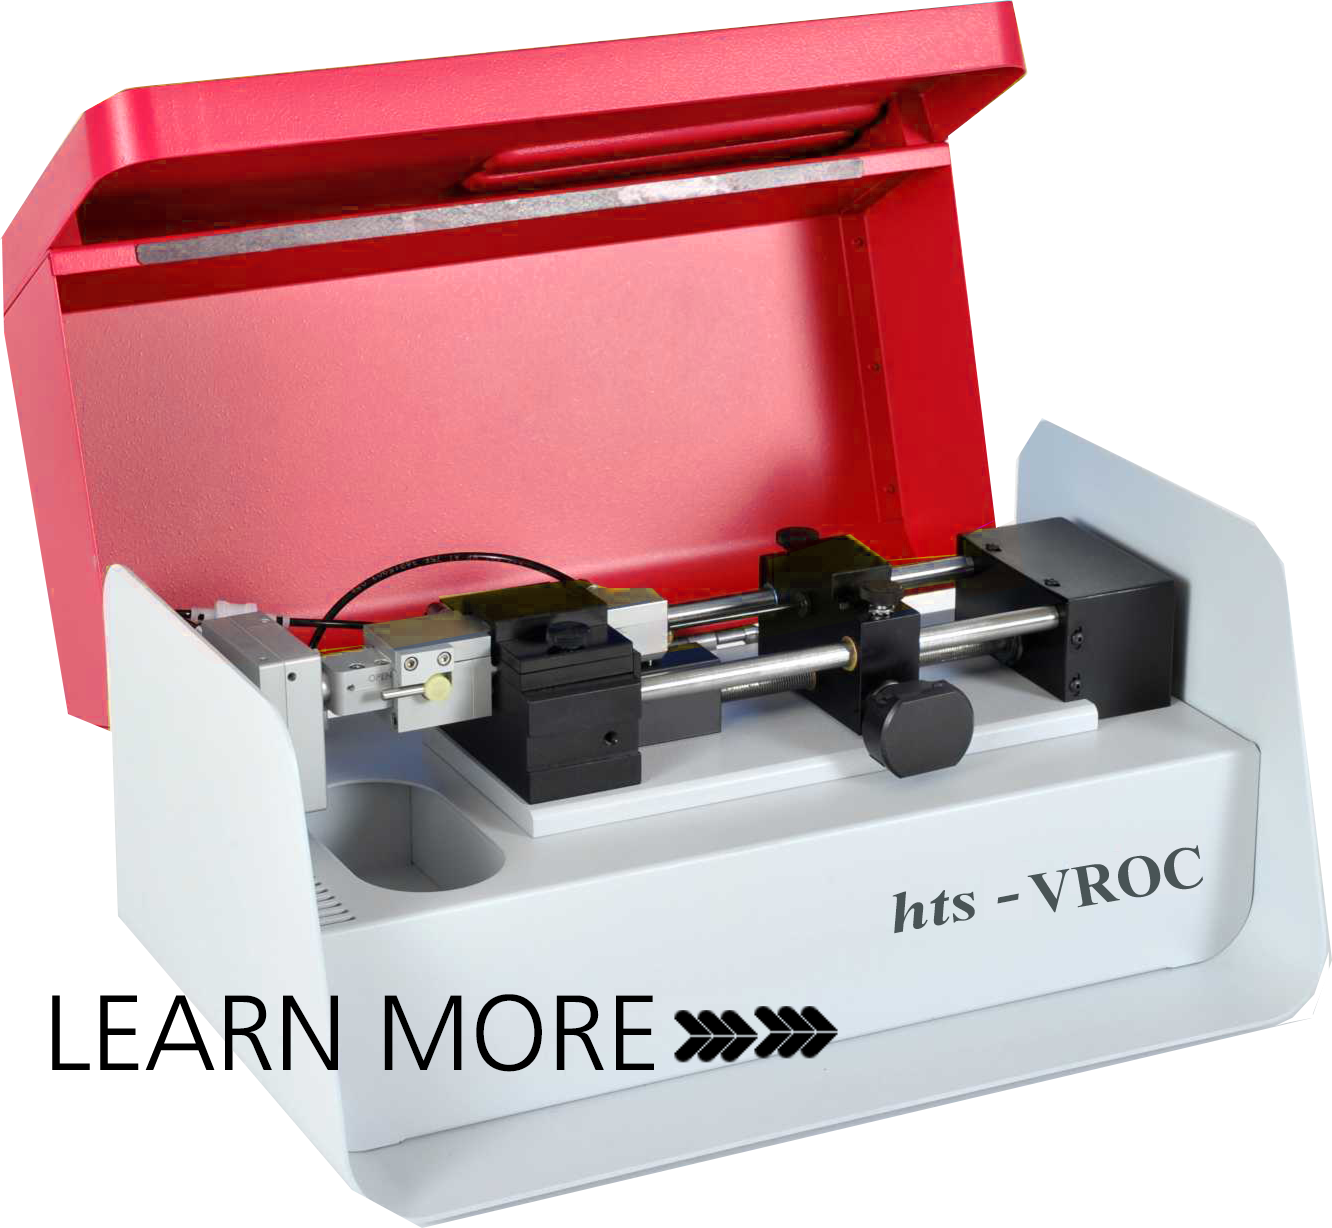 hts-VROC viscometer learn more